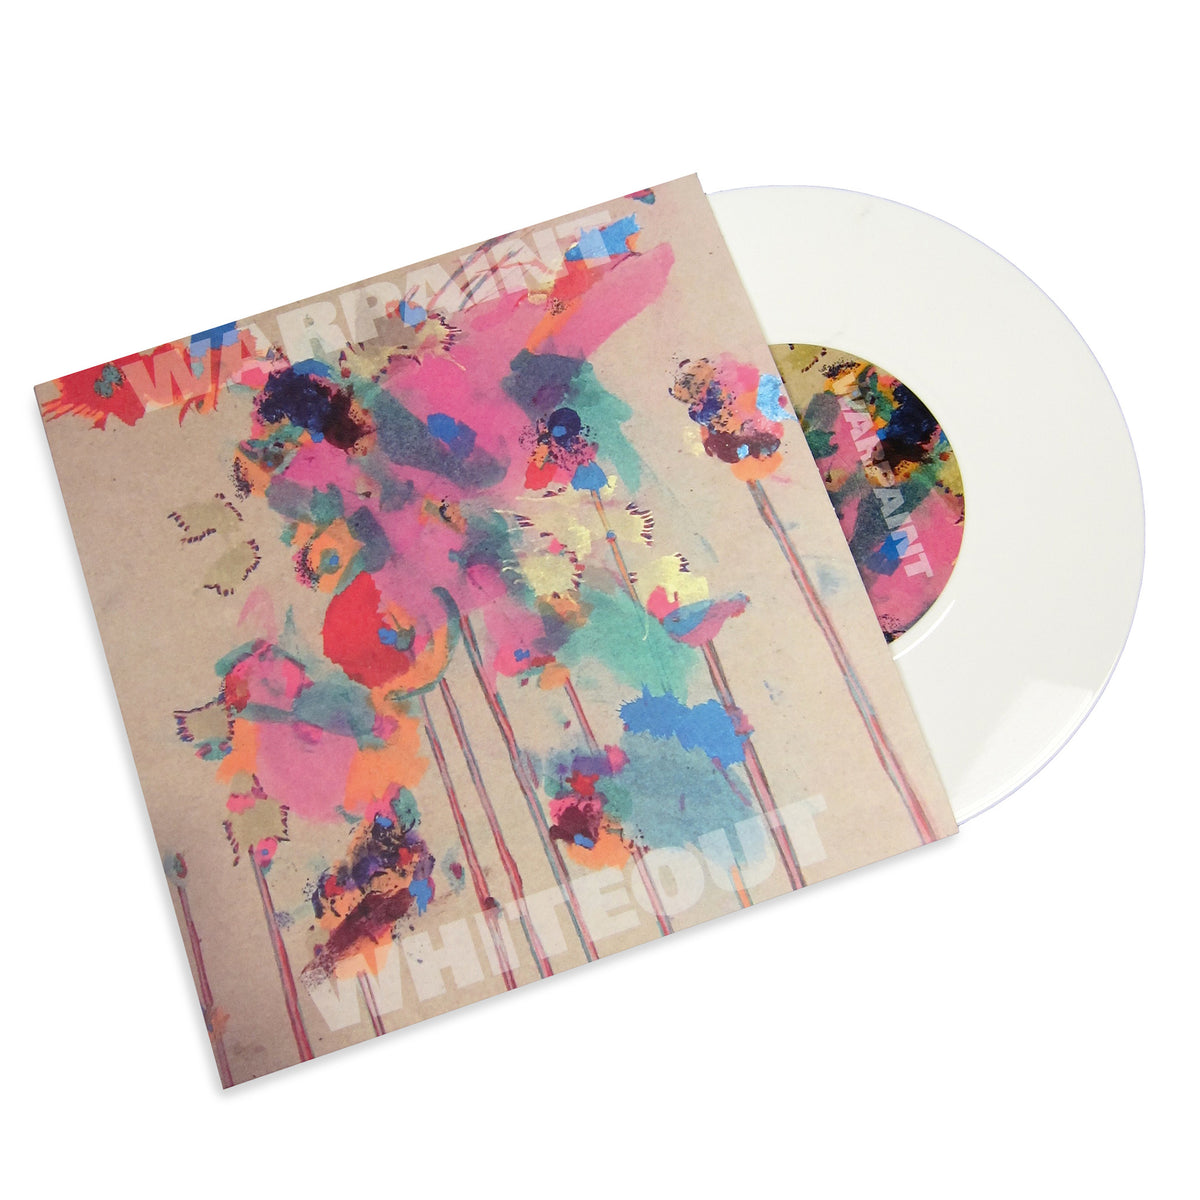 Warpaint: Whiteout (Colored Vinyl) Vinyl 7""